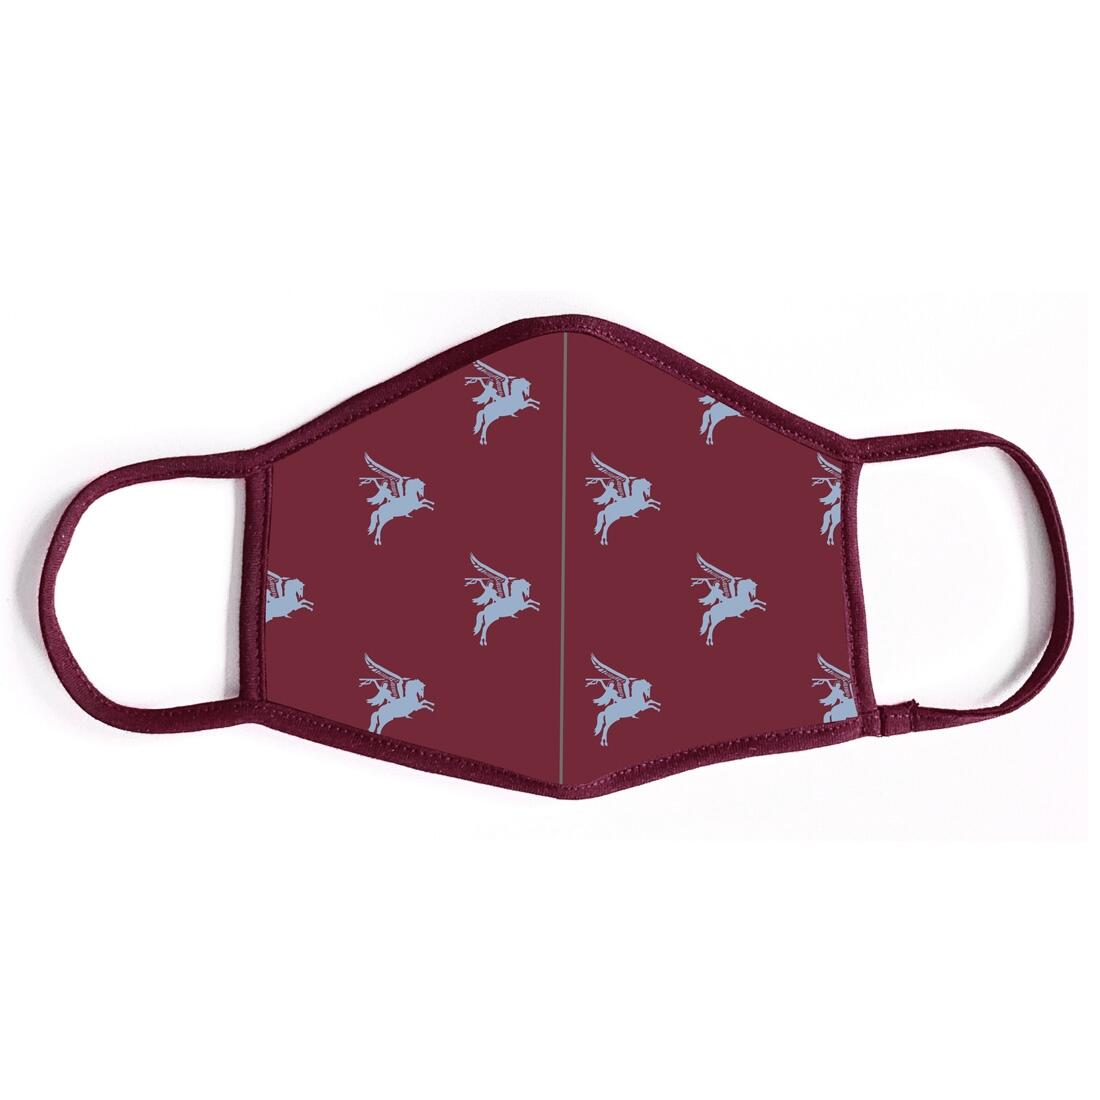 Pegasus Maroon Face Covering (Mask) with Washable FFP2 Filter